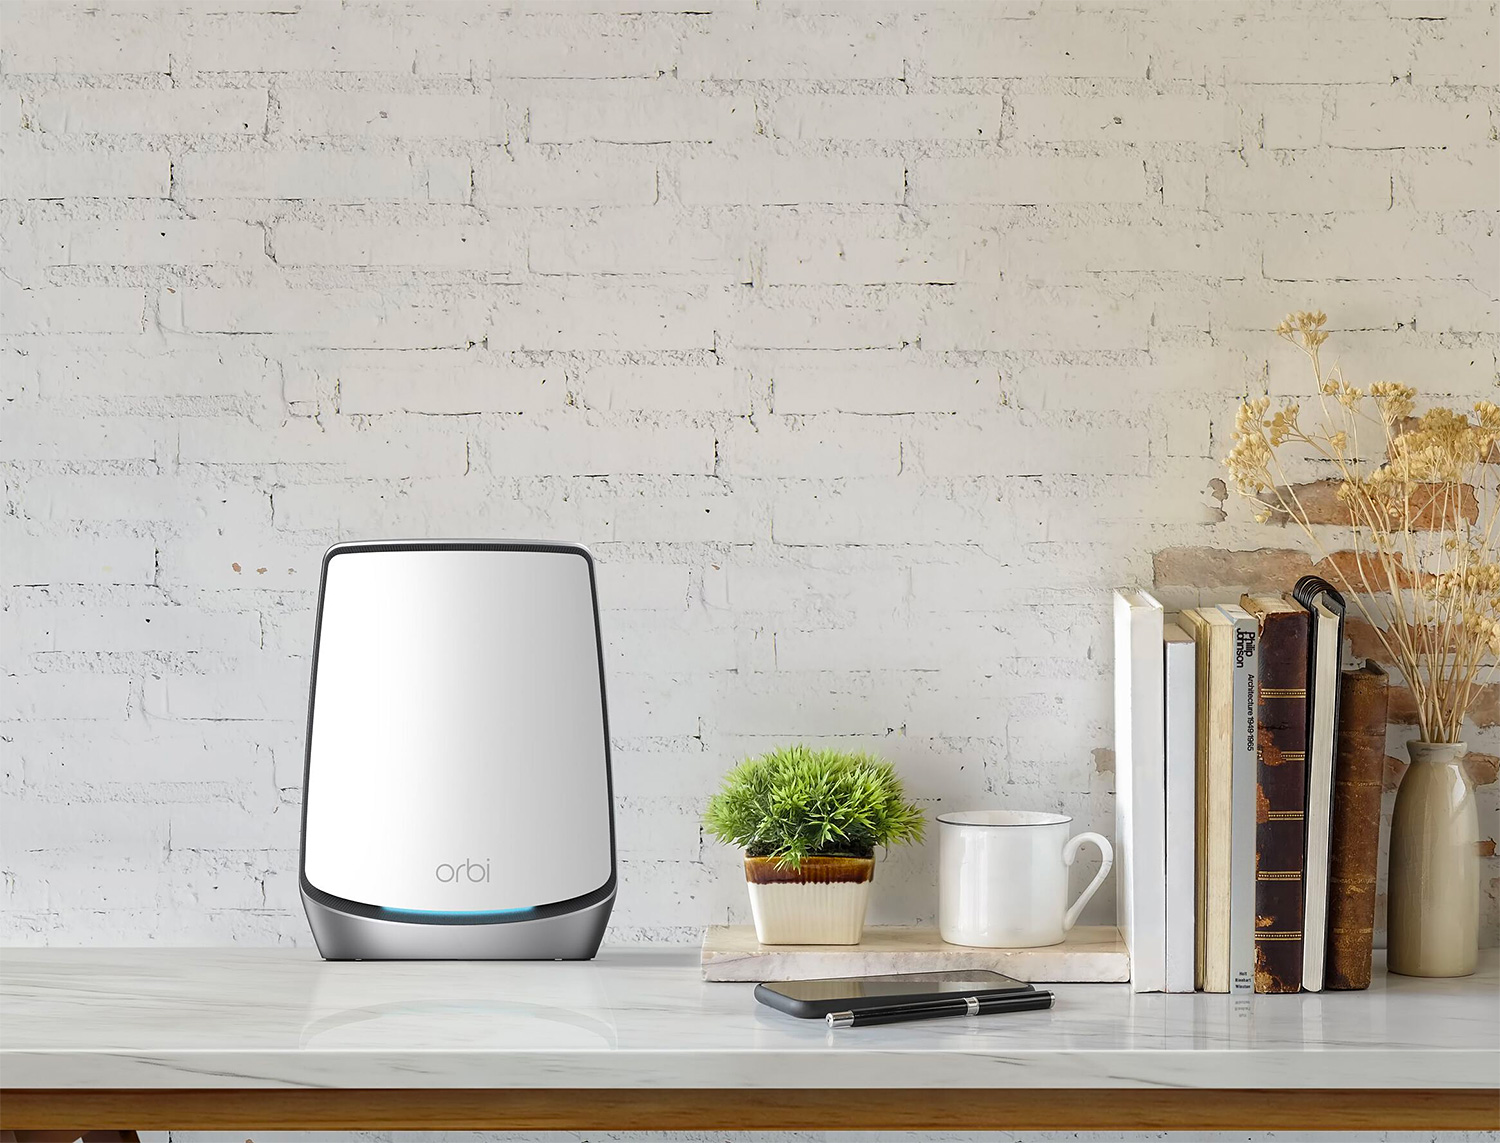 Netgear's Orbi WiFi 6 Mesh System Keeps Home Streaming Glitch Free at werd.com